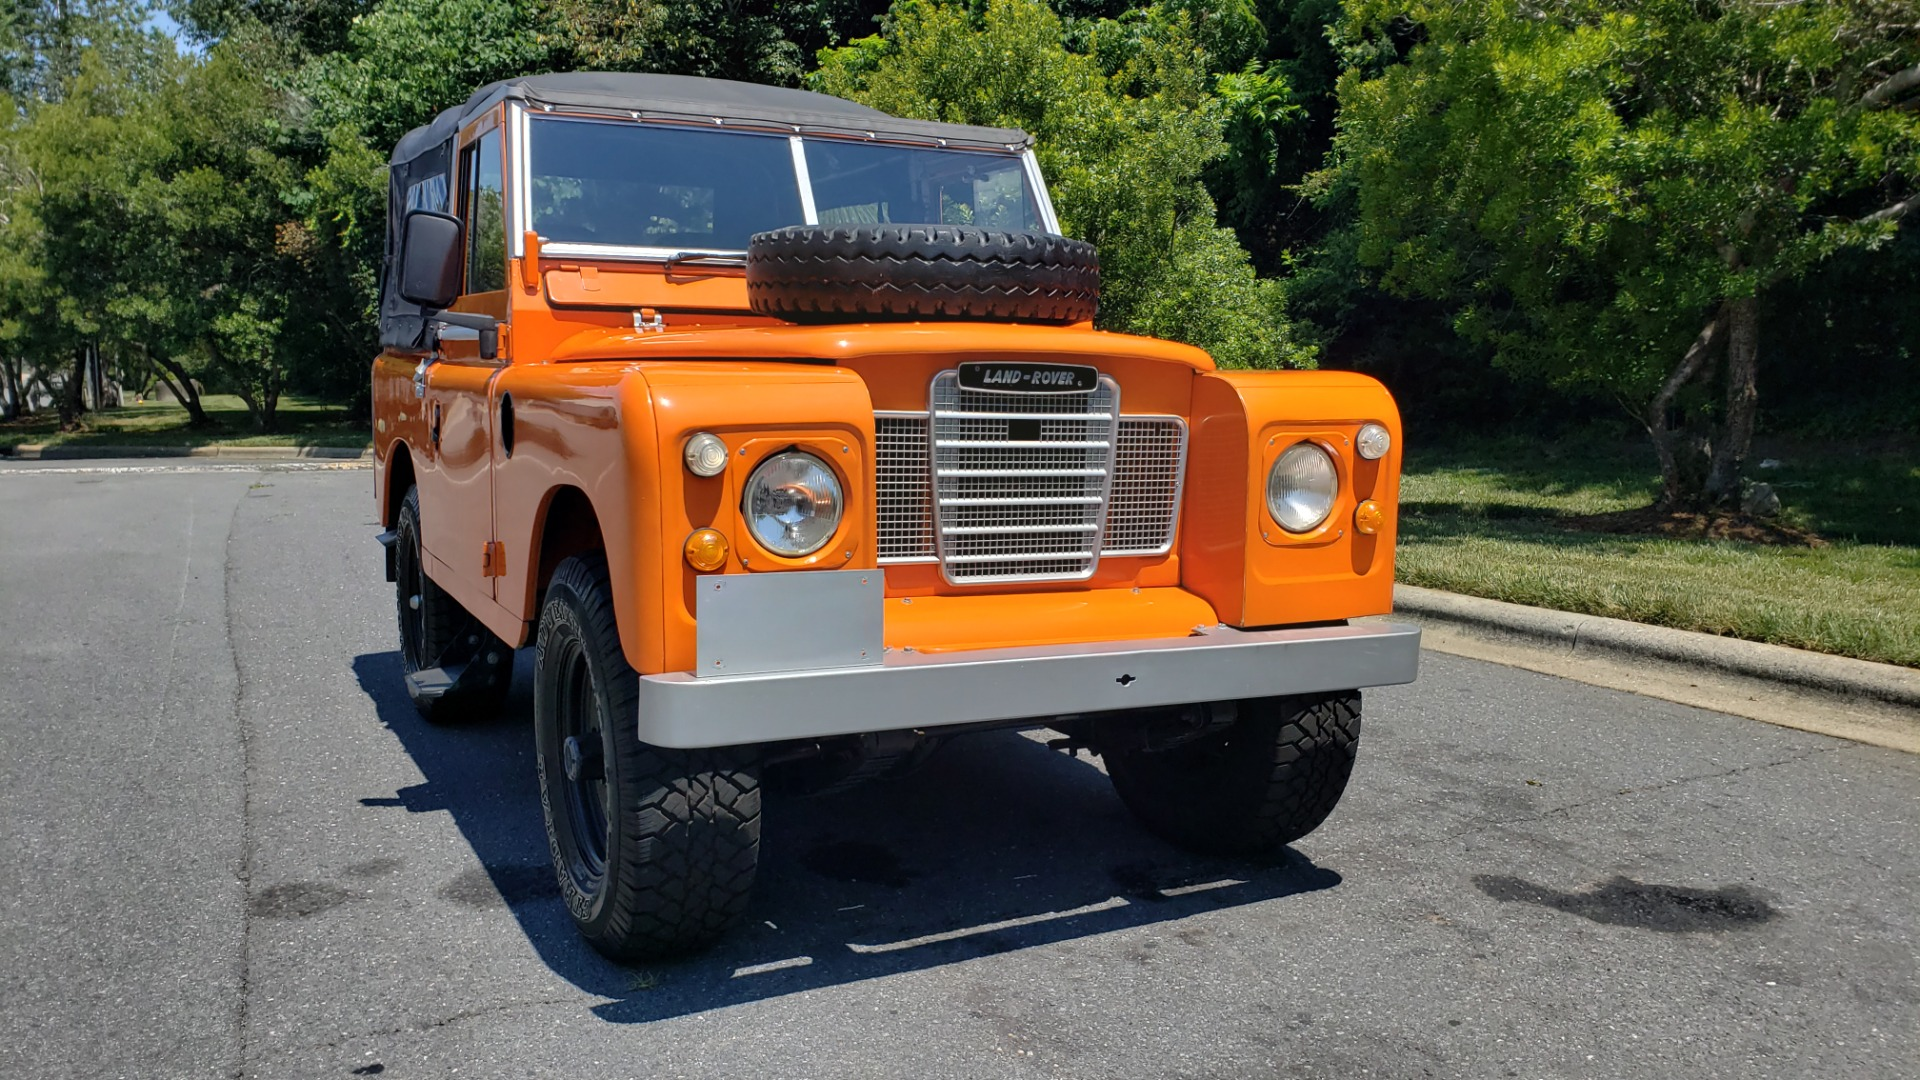 Used 1982 Land Rover SERIES 3 4X4 / SOFT-TOP / FULLY RESTORED / RUNS GREAT for sale $41,900 at Formula Imports in Charlotte NC 28227 29